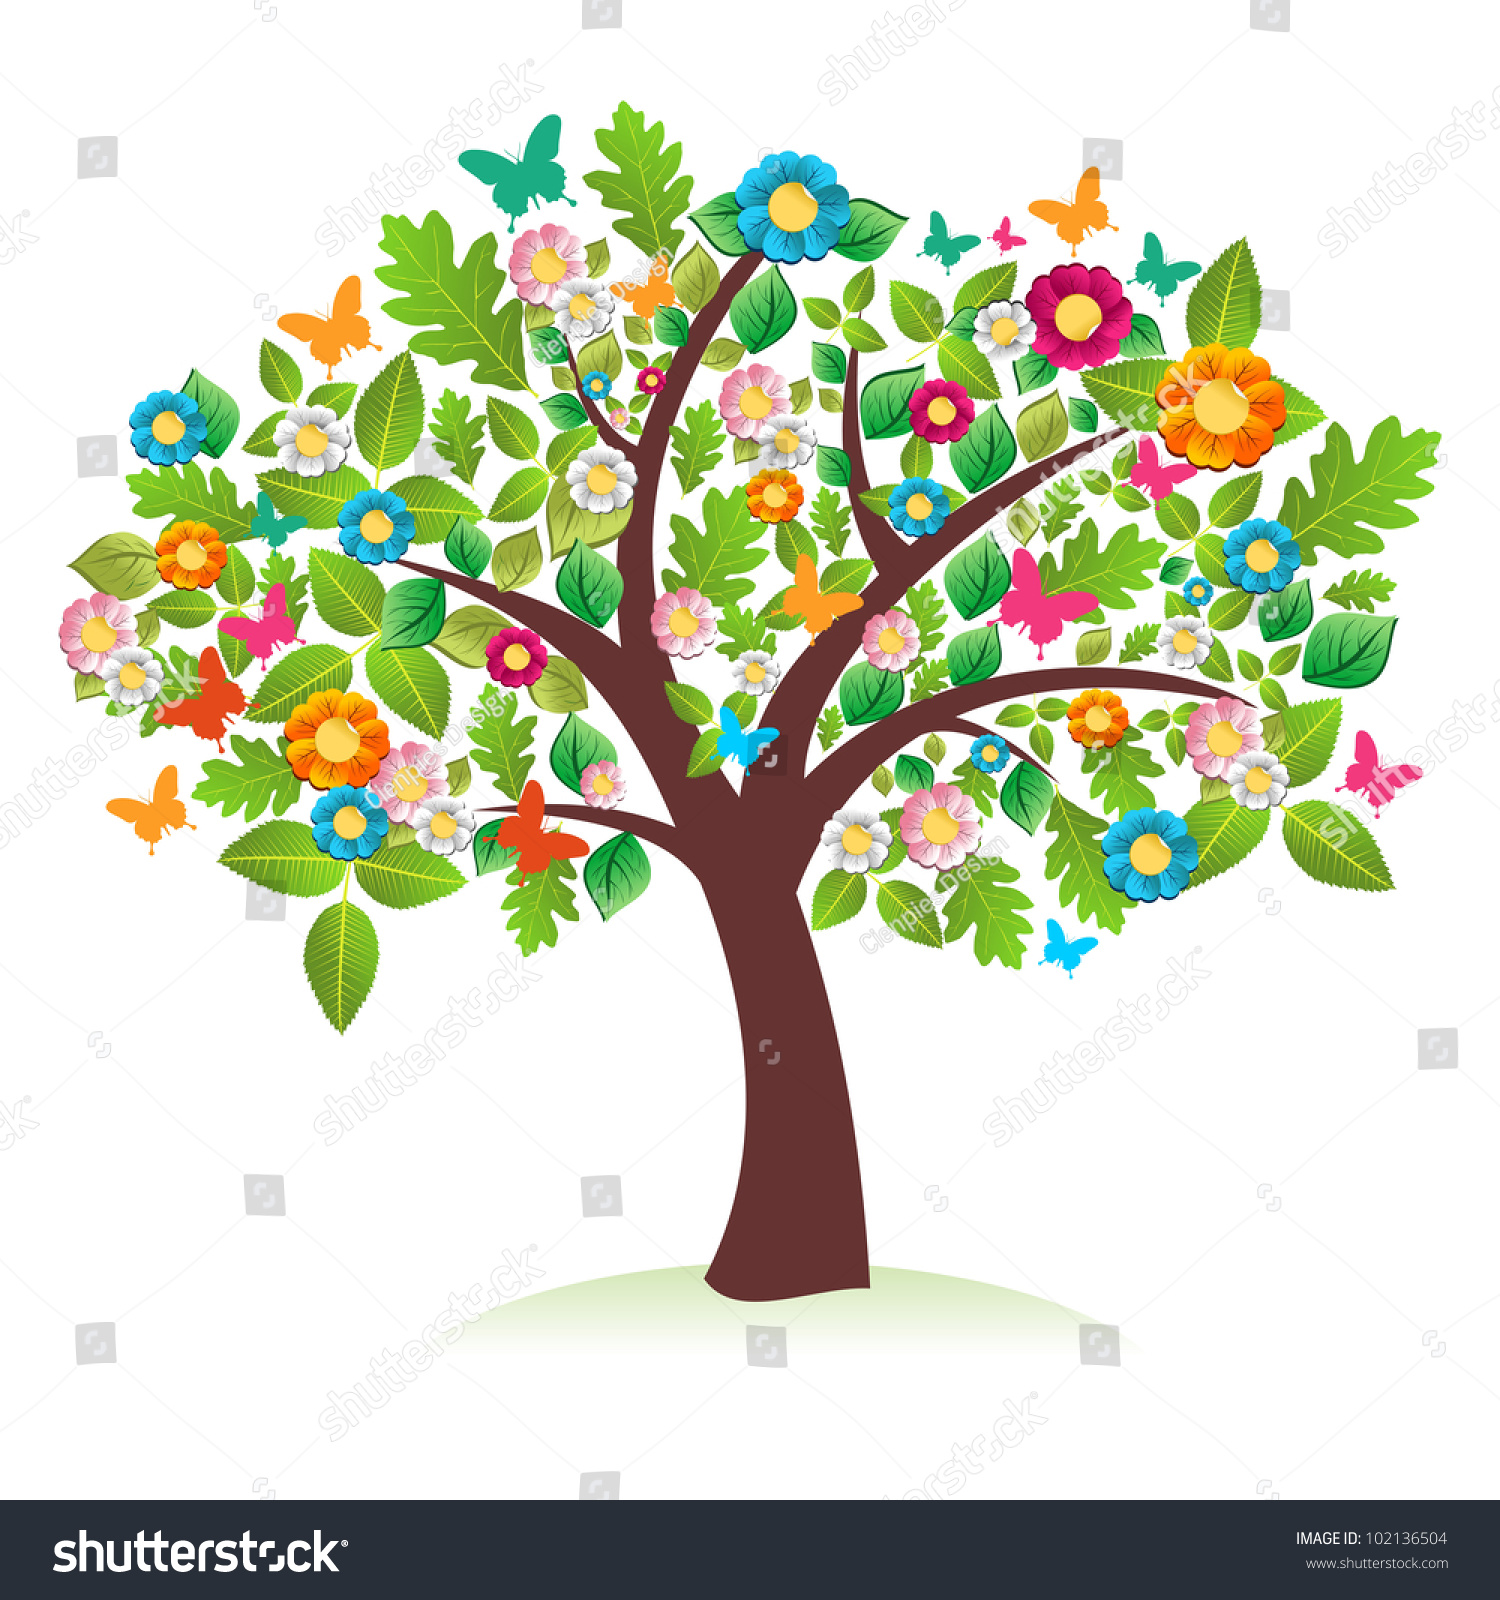 Abstract Spring Time Tree Composition Flowers Stock Vector 102136504 ...